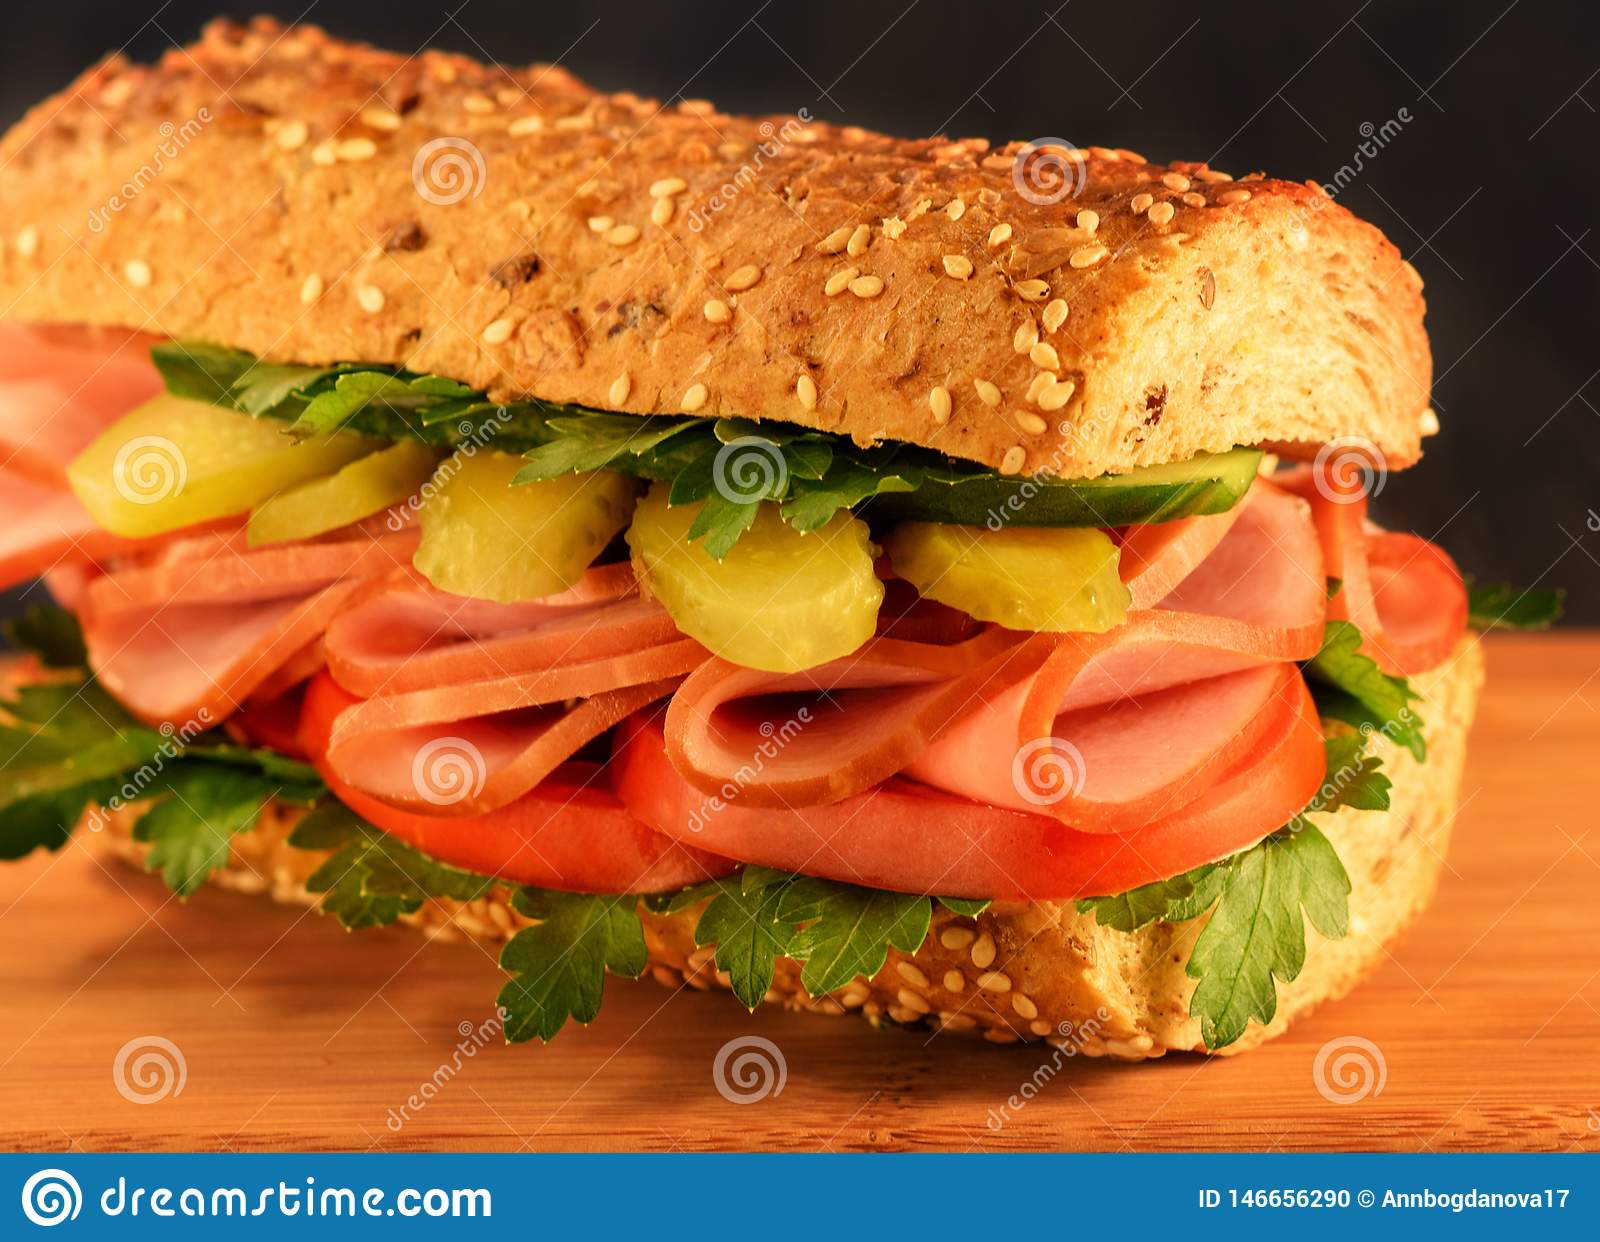 Close-up sandwich  with ham, pickled cucumber, tomato and greens. Sesame Bun